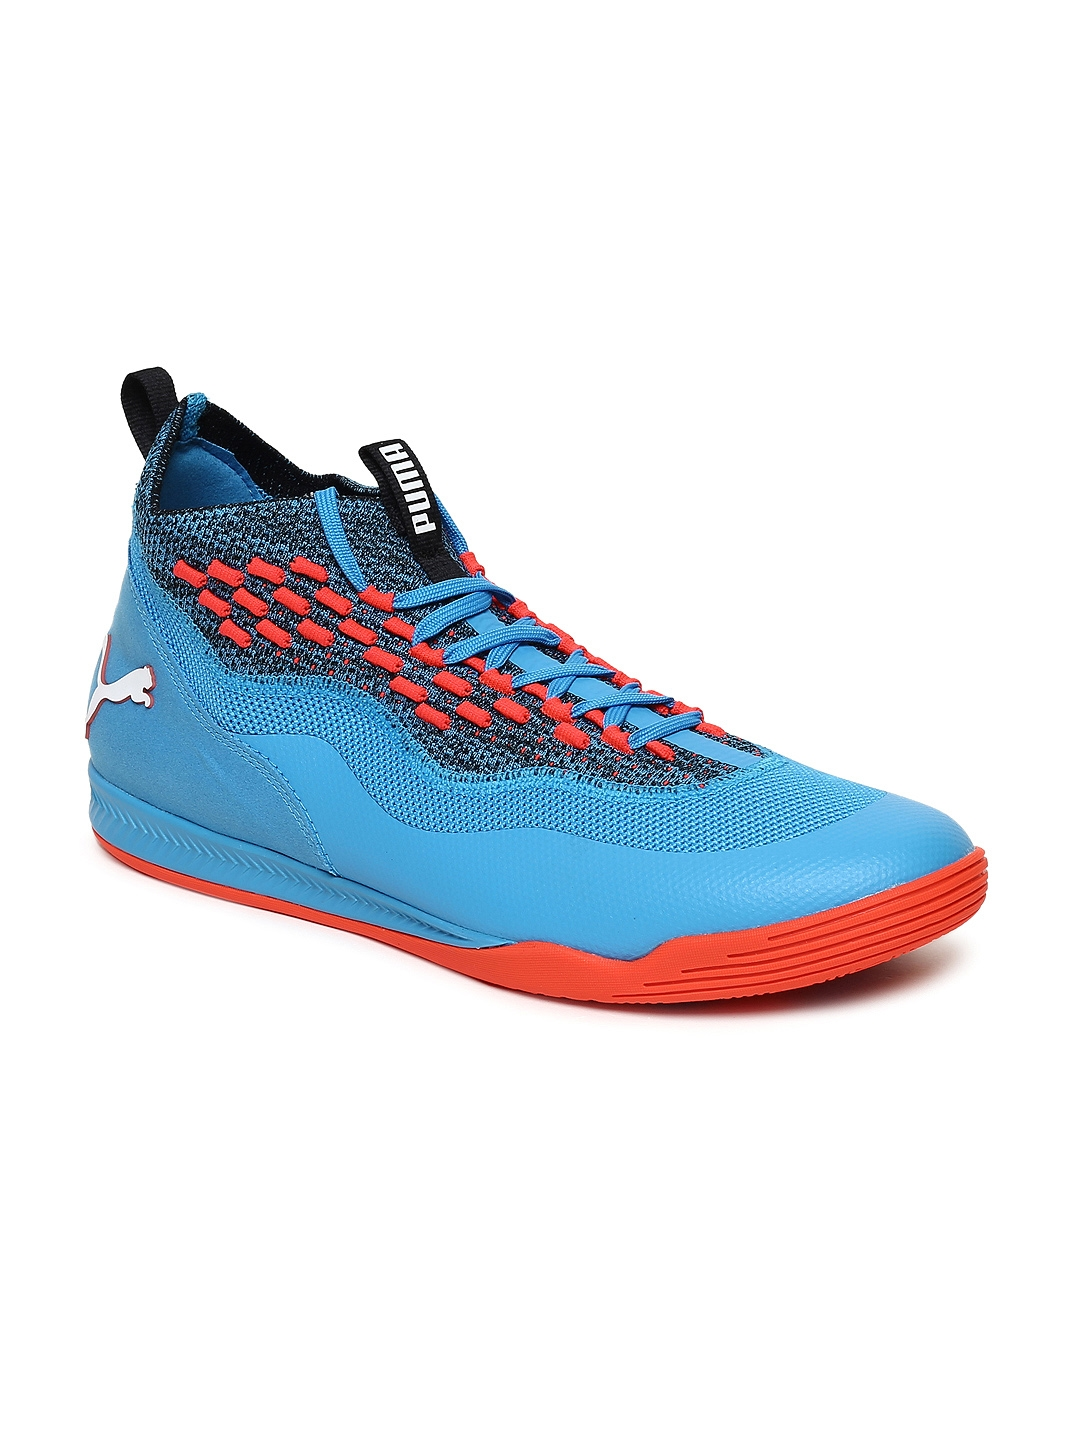 17d798810795d4 Buy Puma Unisex Blue Sharp FUSE Badminton Shoes - Sports Shoes for ...